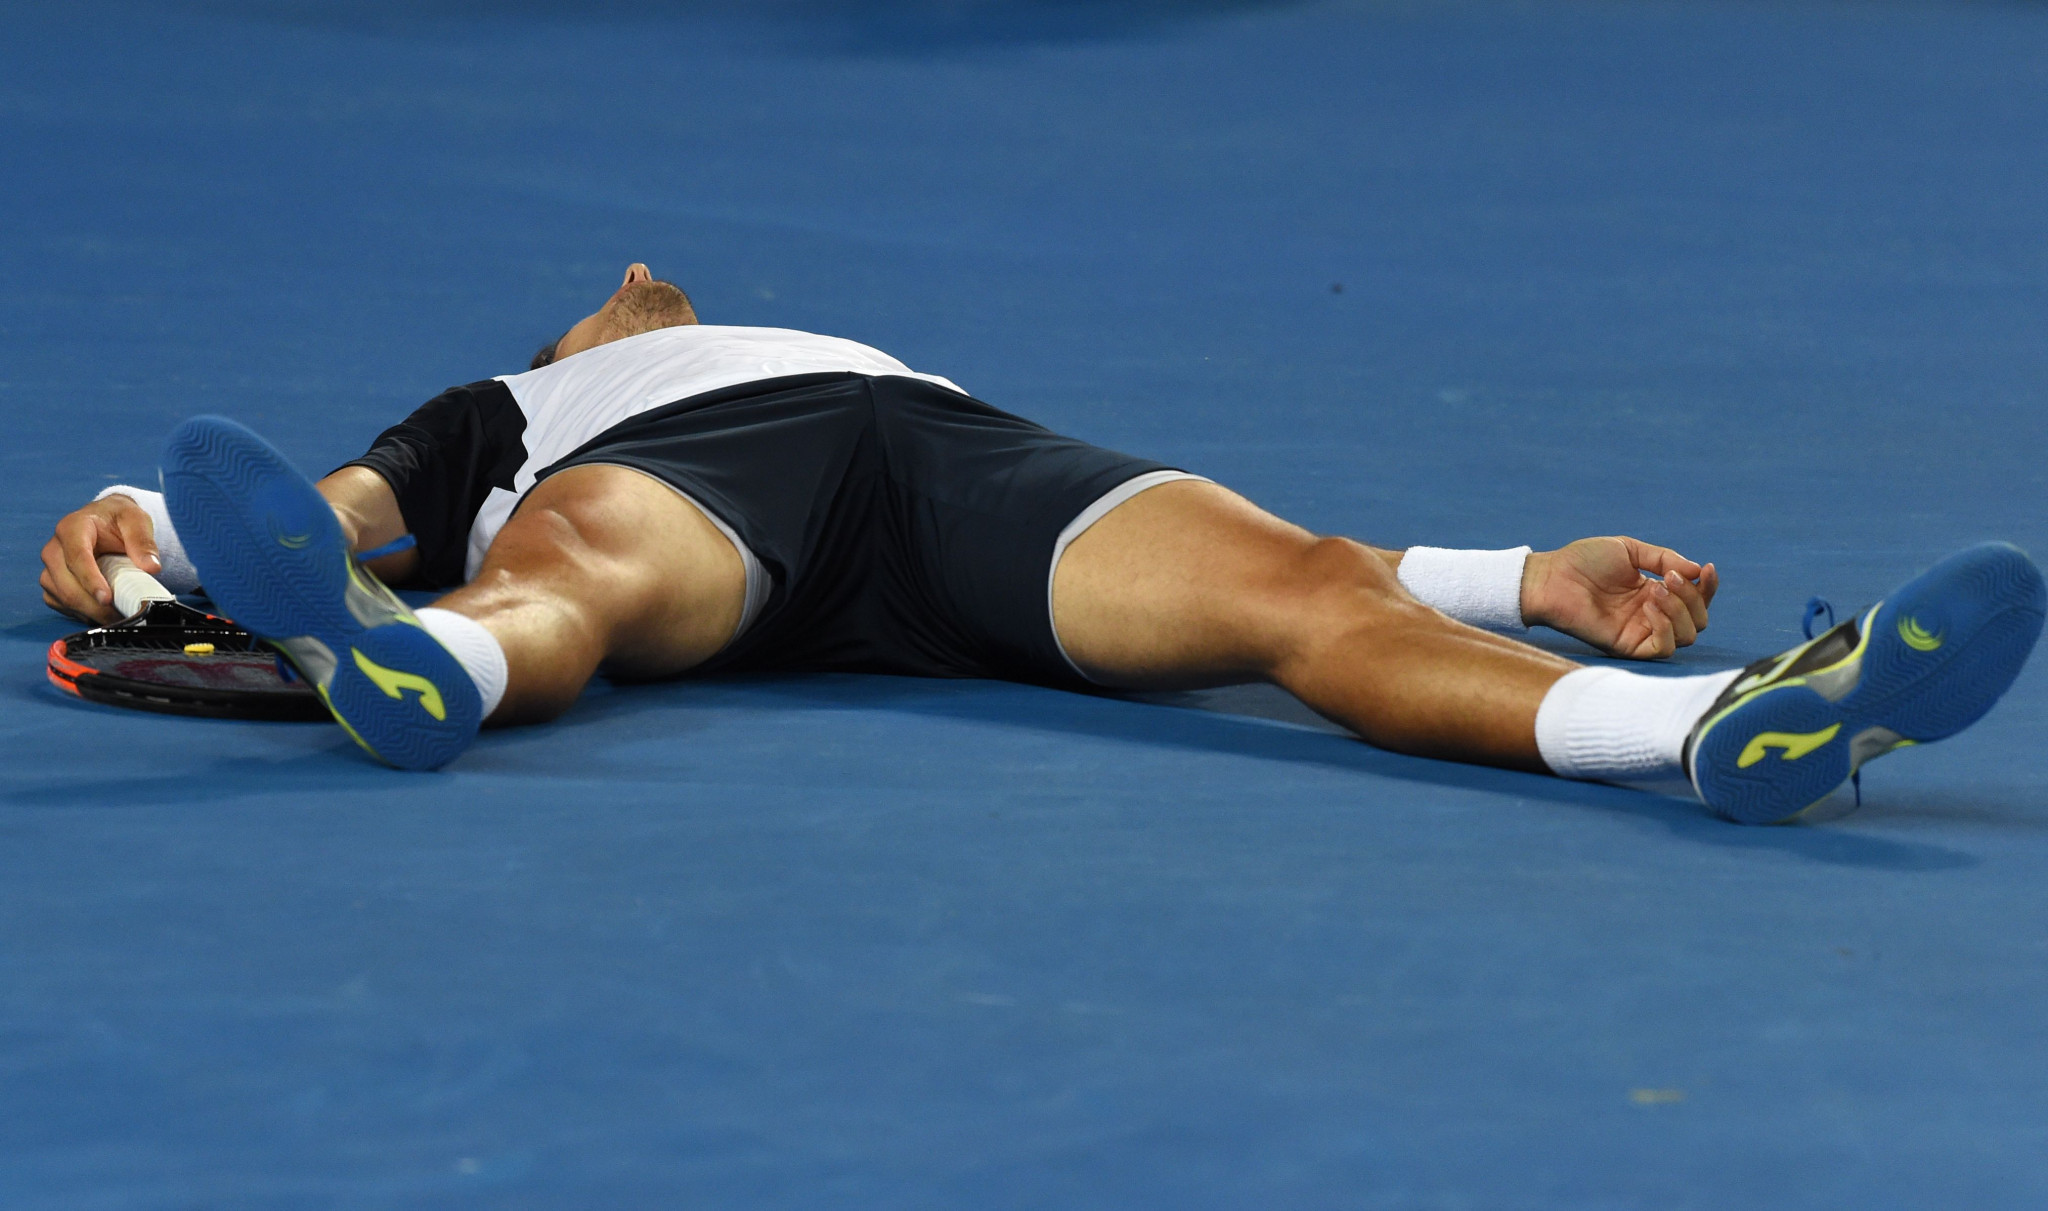 Pablo Carreno Busta showed exhaustion during the five set match with Nishikori ©Getty Images